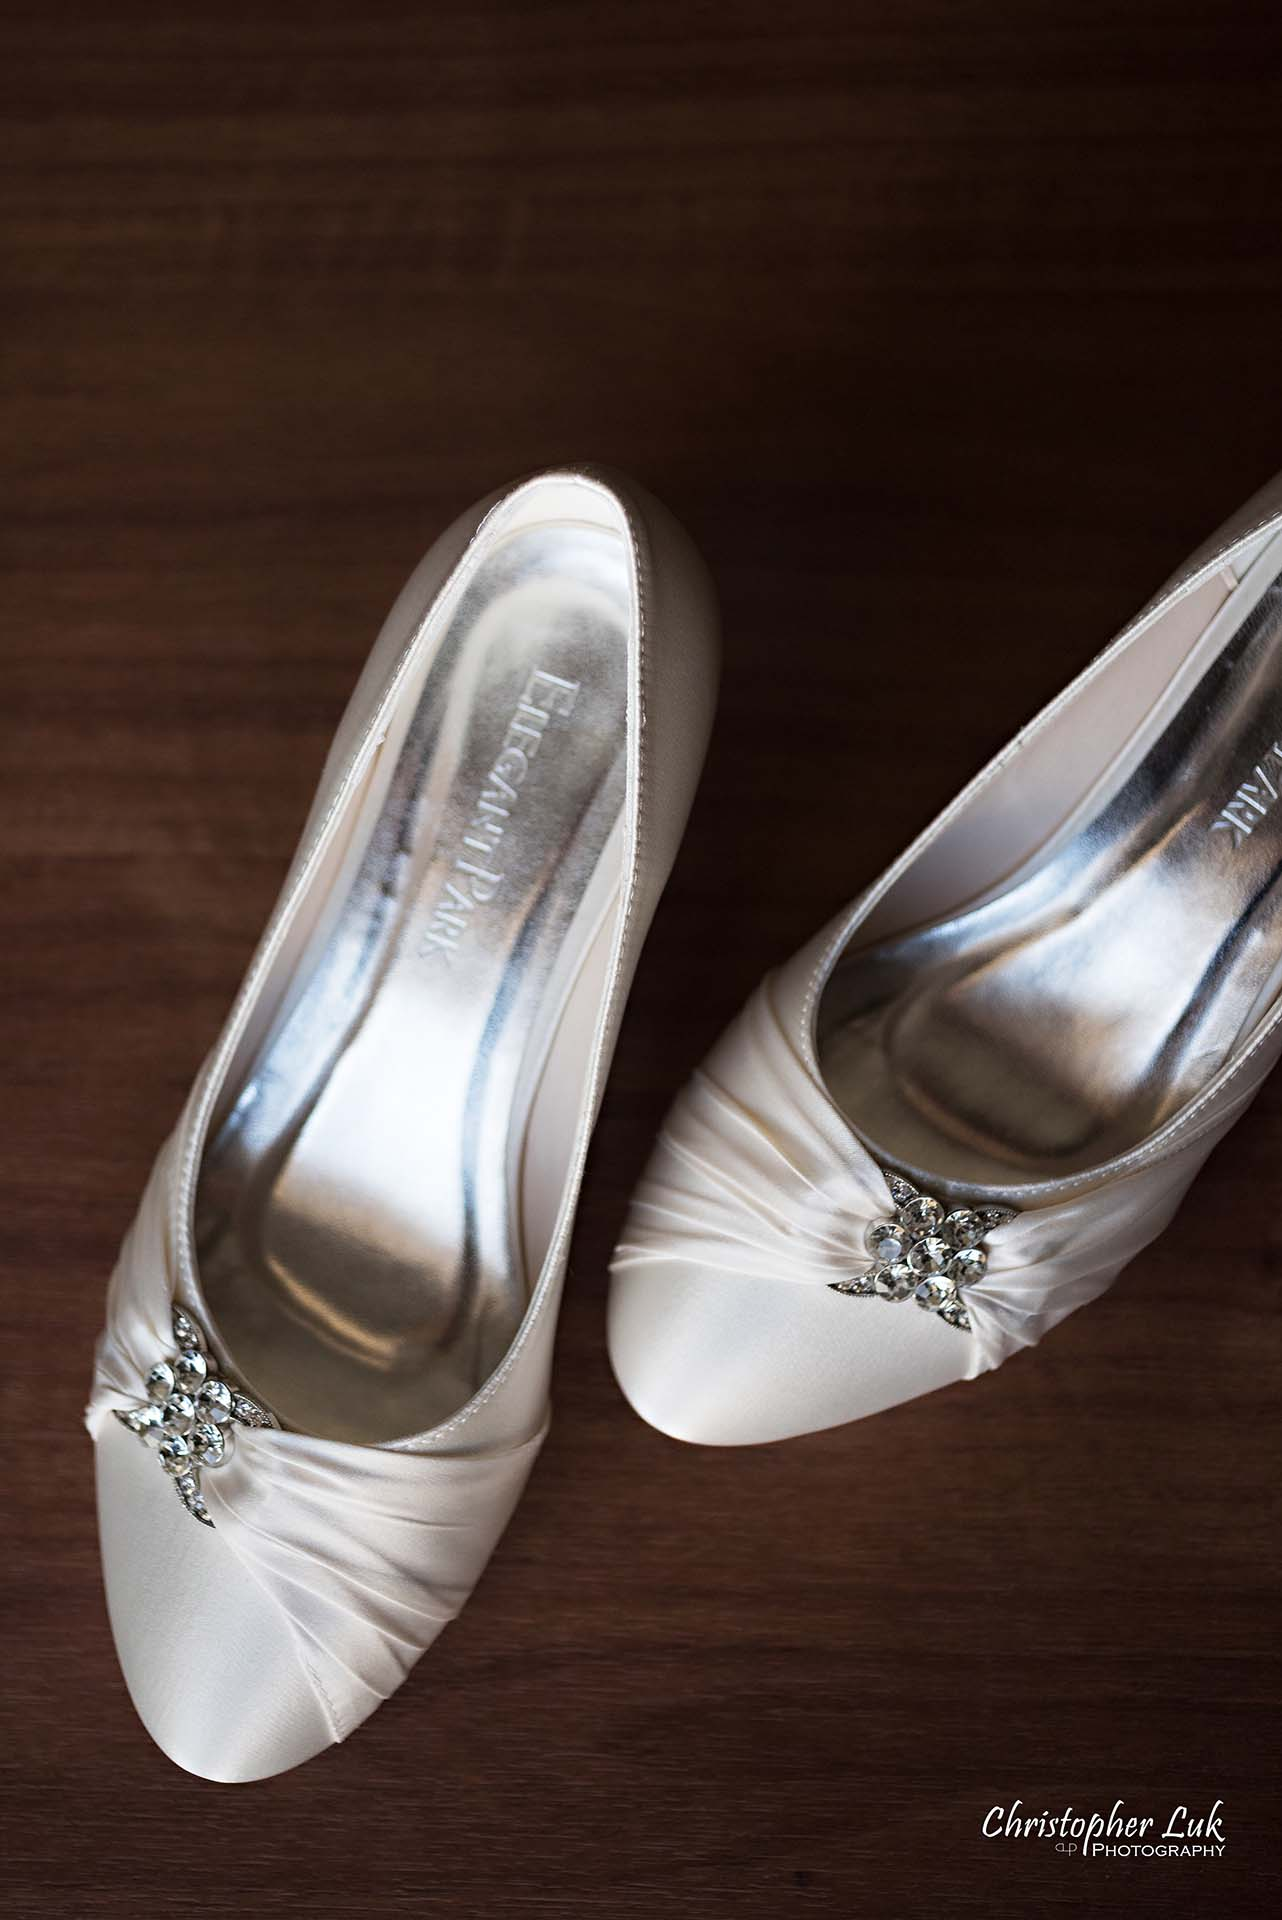 Christopher Luk Toronto Wedding Photographer Hotel Bride Getting Ready Details Crystal Beads Bridal Pumps Heels Shoes